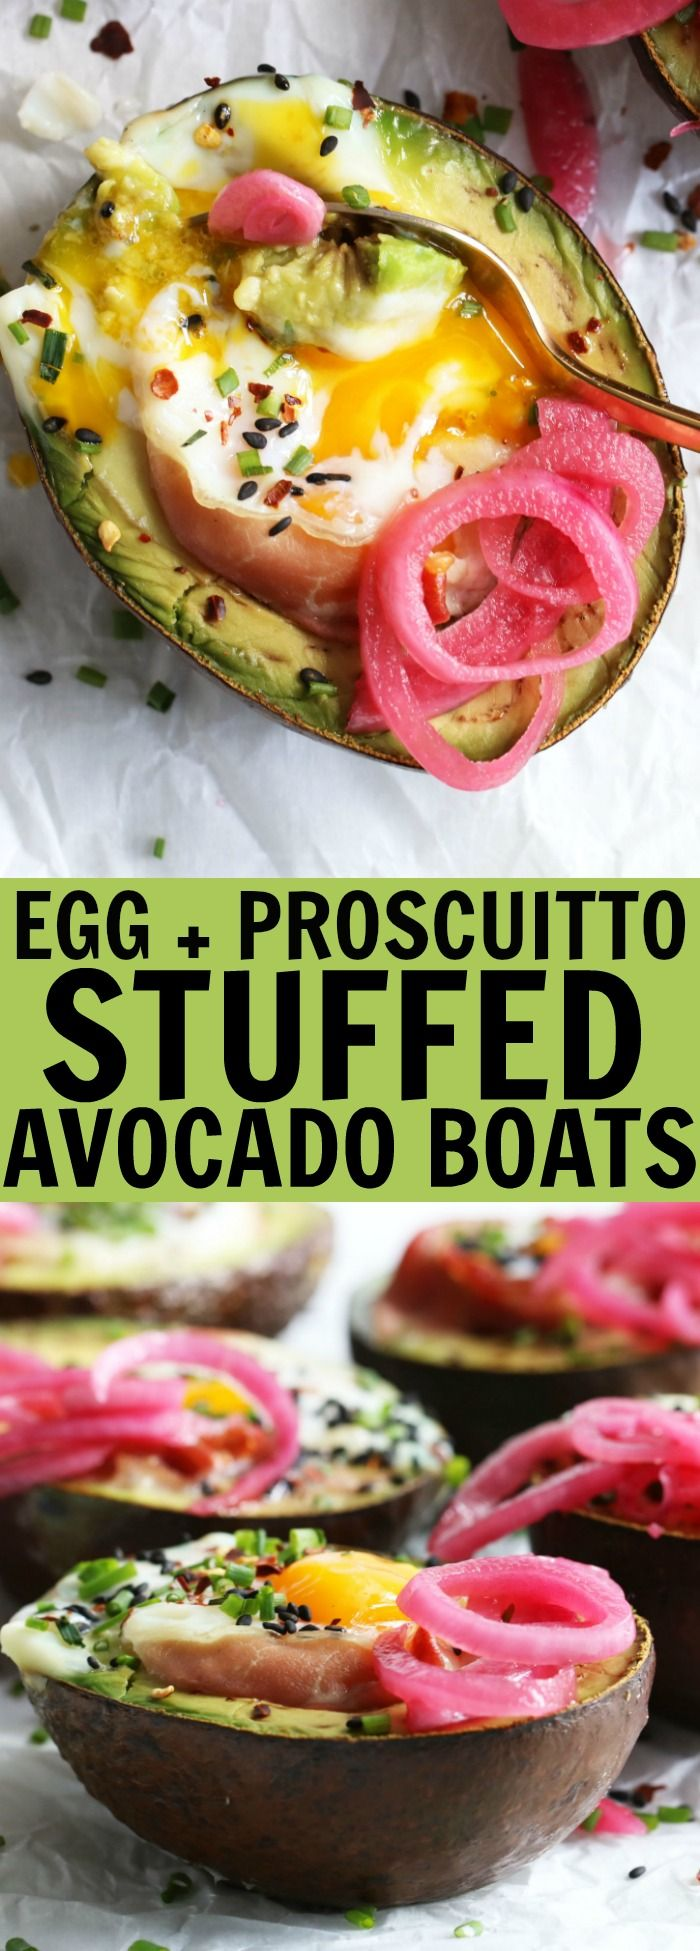 Egg + Prosciutto Stuffed Avocado Boats